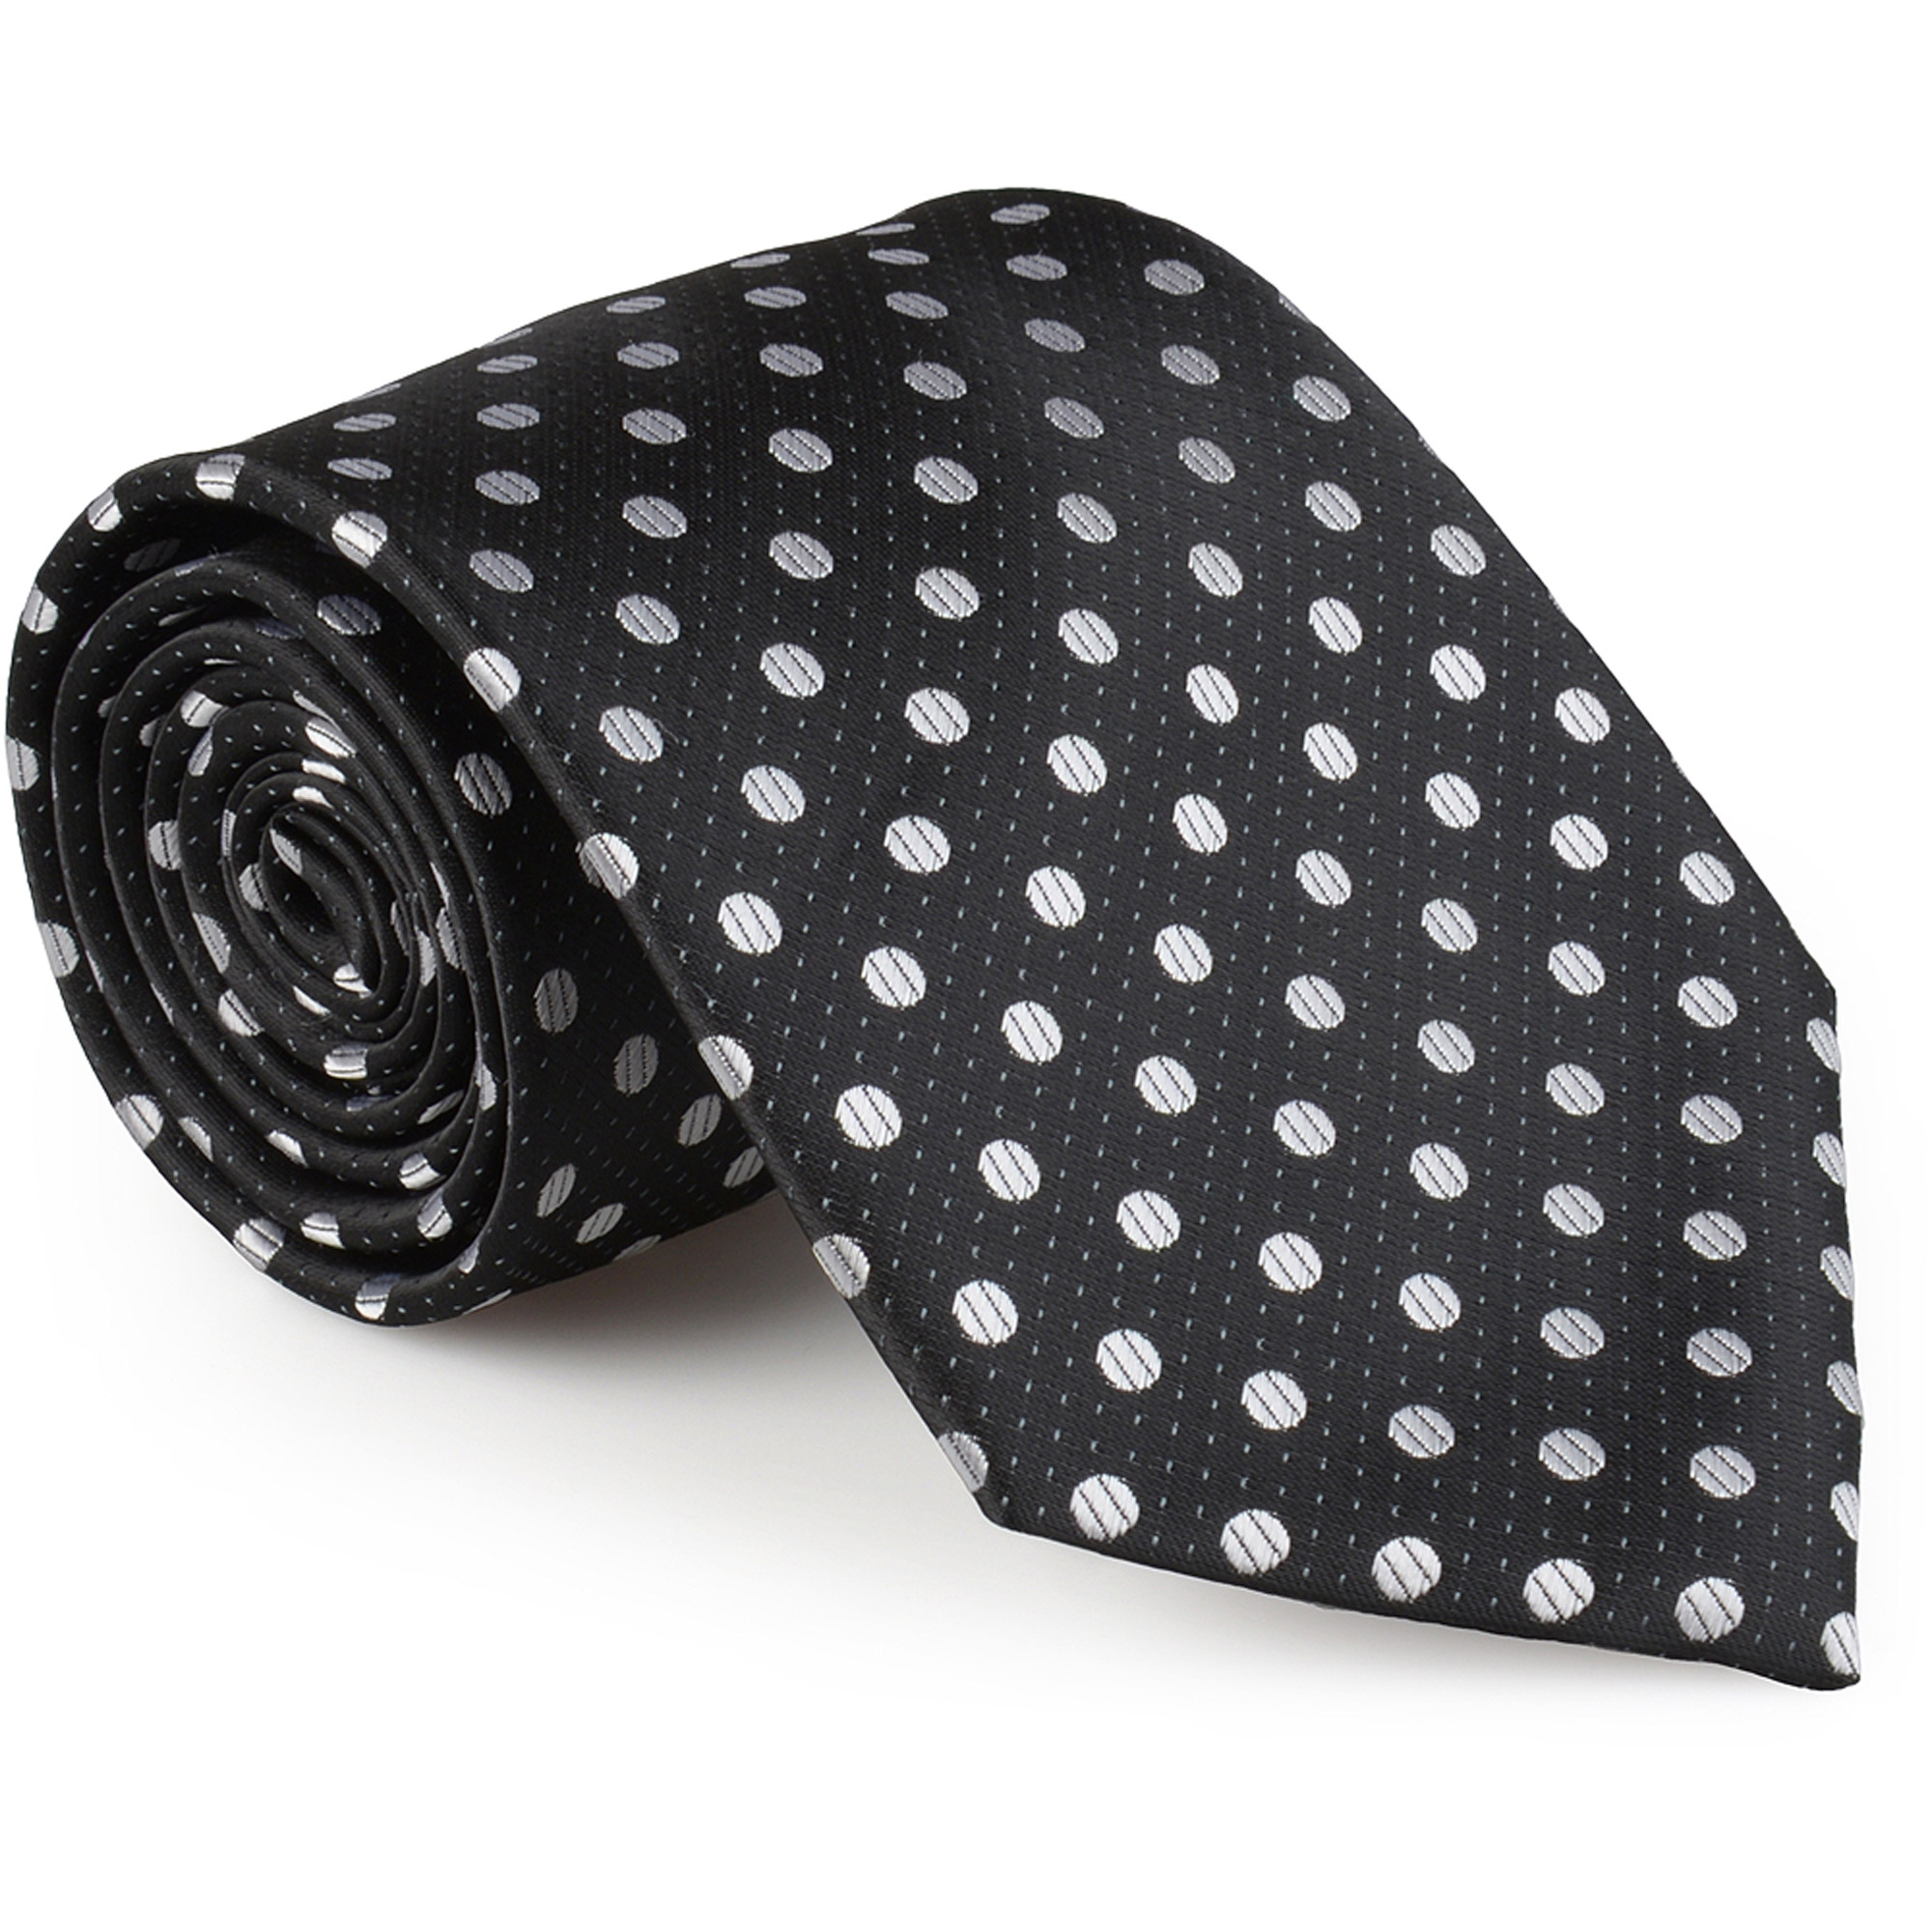 Daxx Mens Microfiber Handmade Polka Dot Tie and Hanky Set